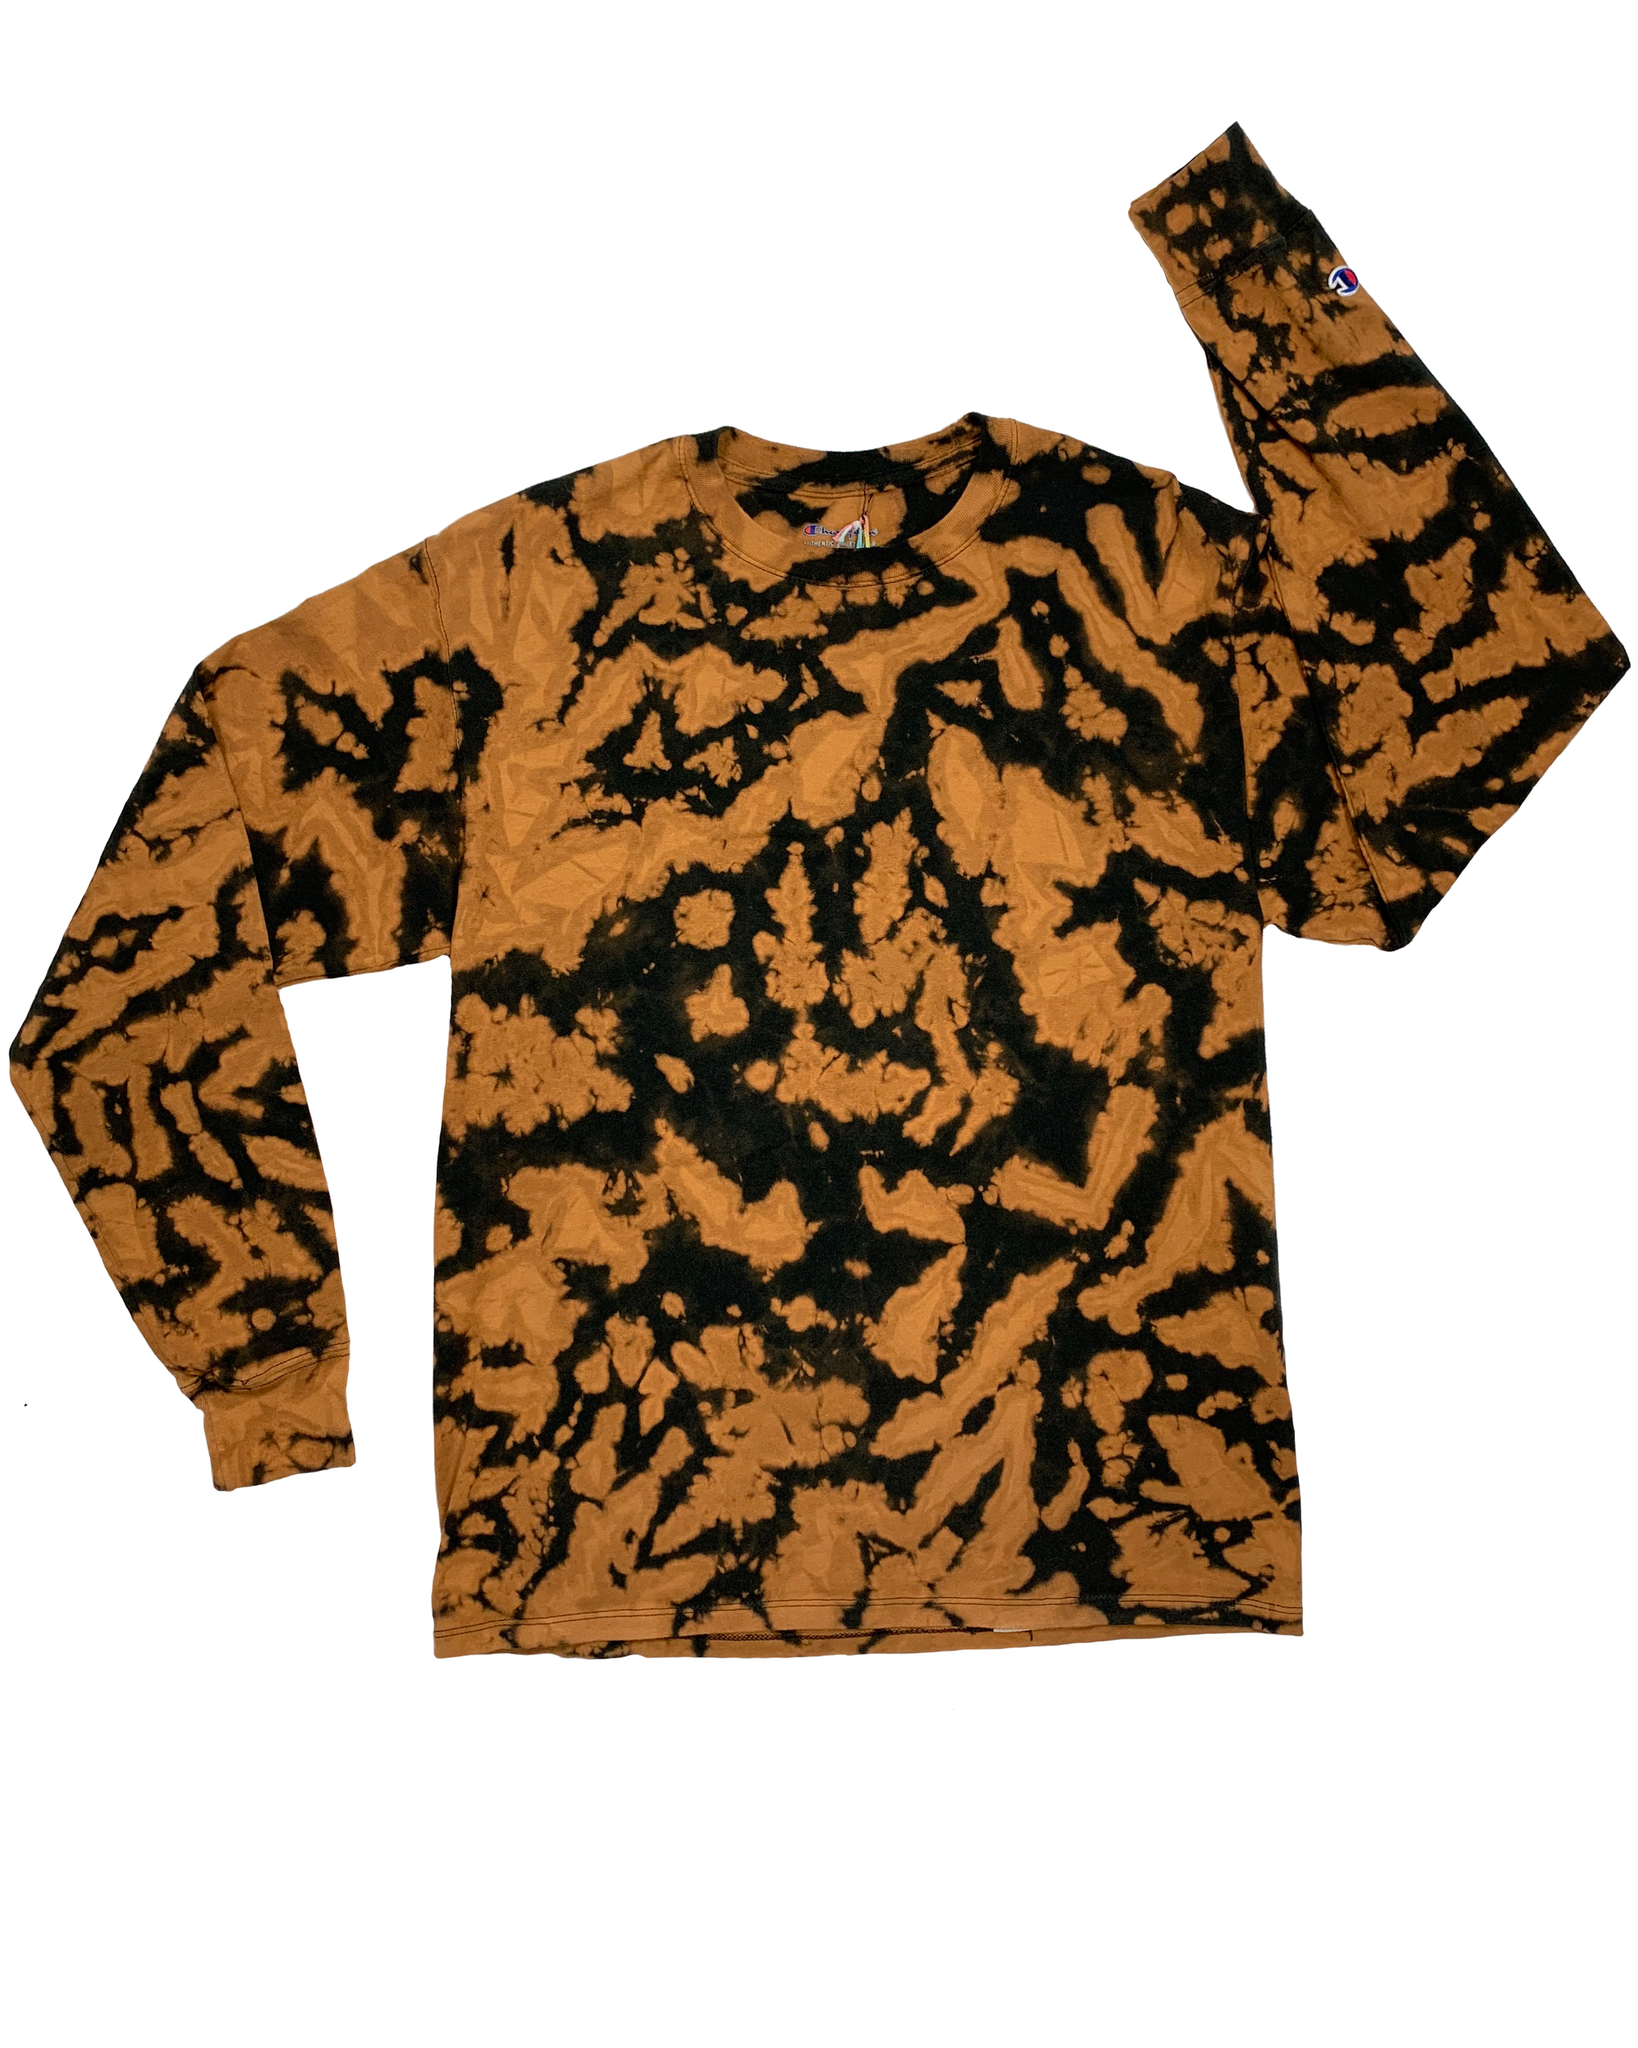 PET CHEETAH Longsleeve Tie-Dye Shirt